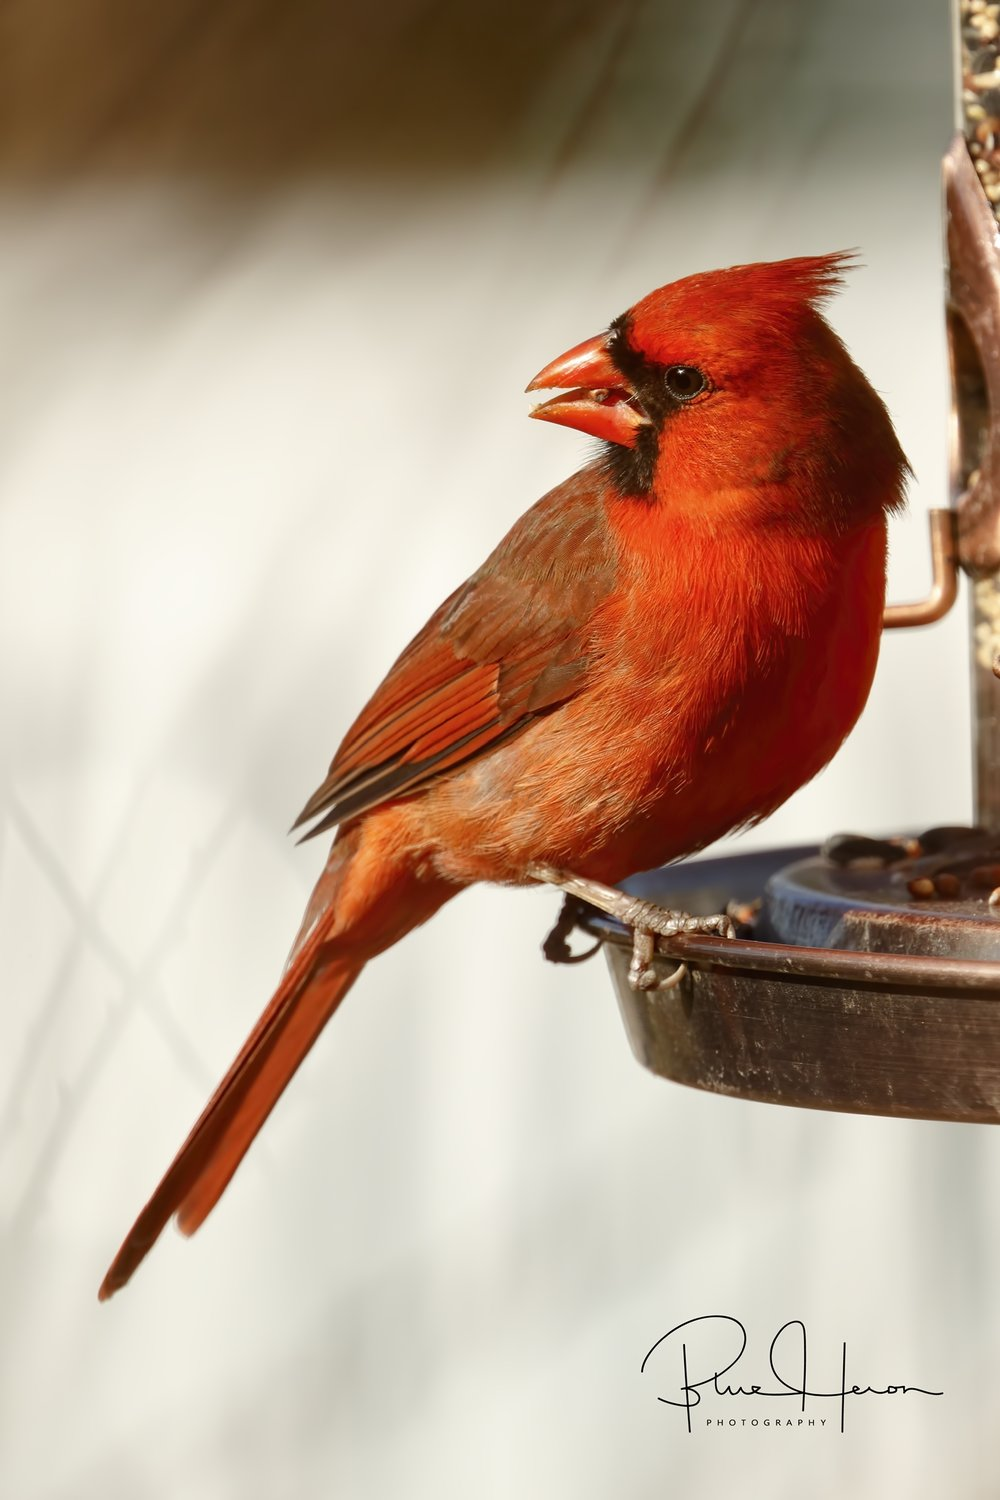 Not a big fan of feeder shots but this is the only place I got this Northern Cardinal in the open